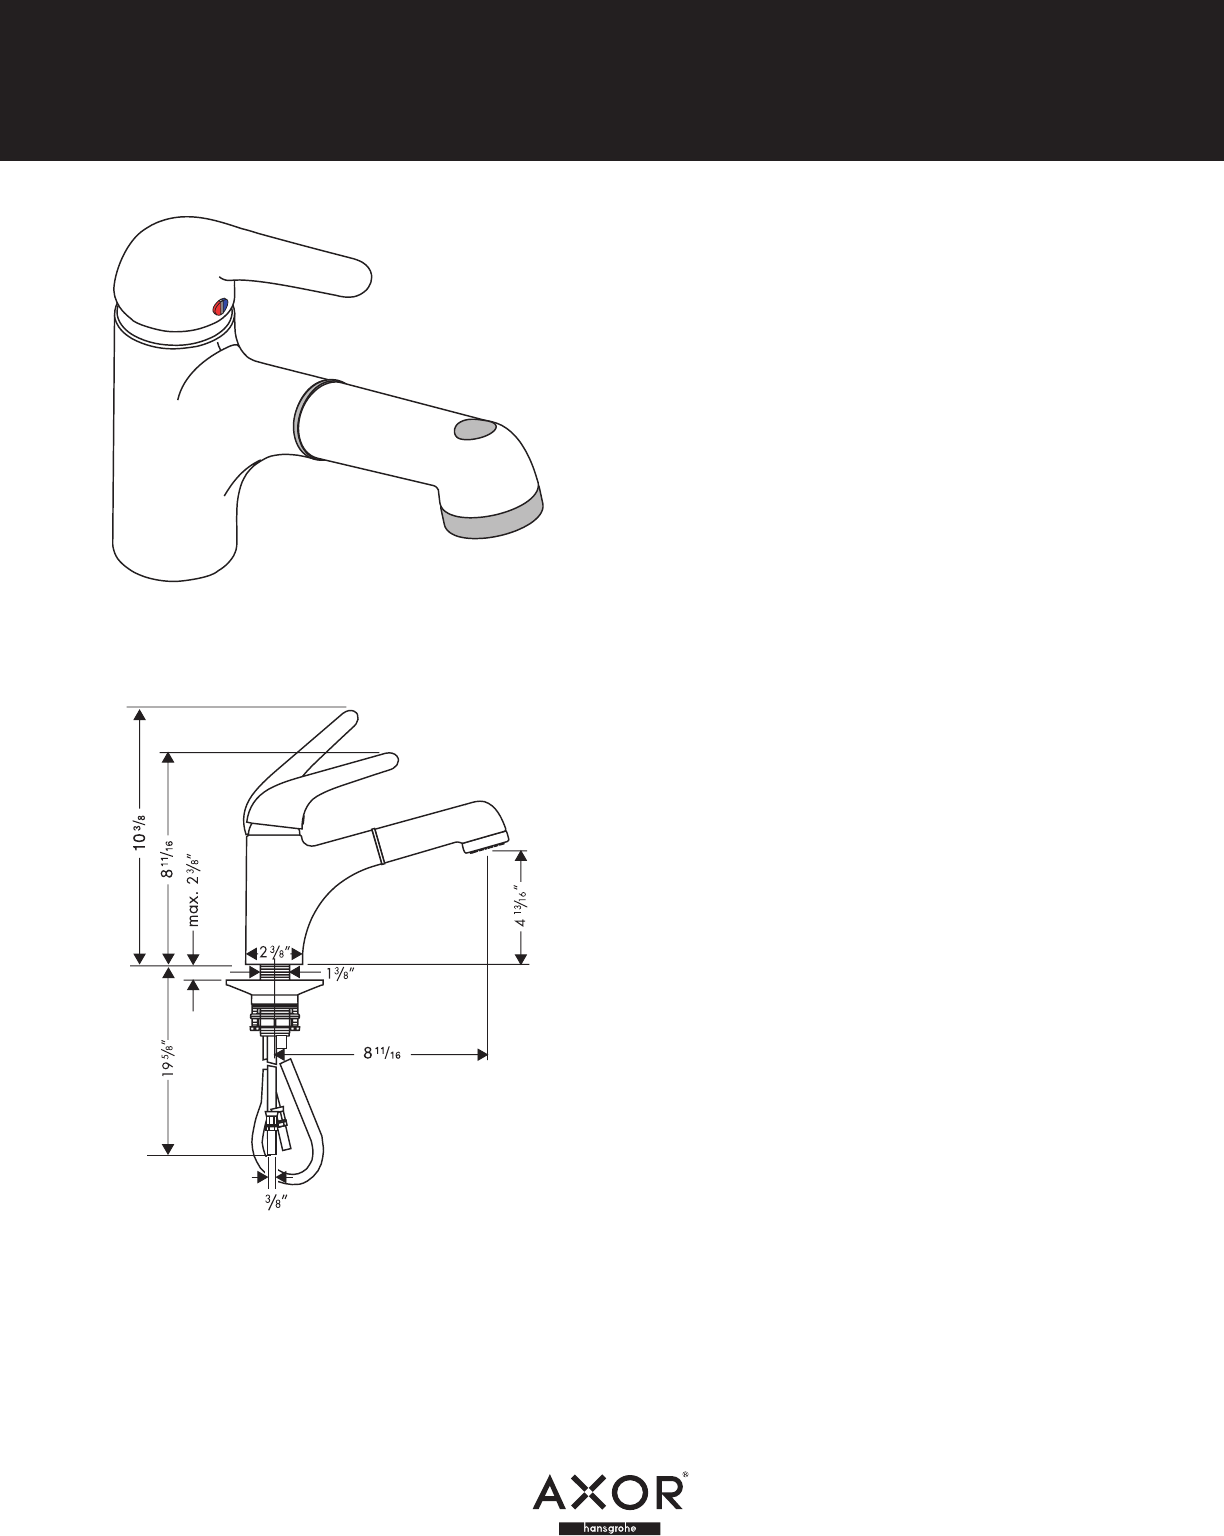 Axor Plumbing Product 35807801 User Guide | ManualsOnline.com